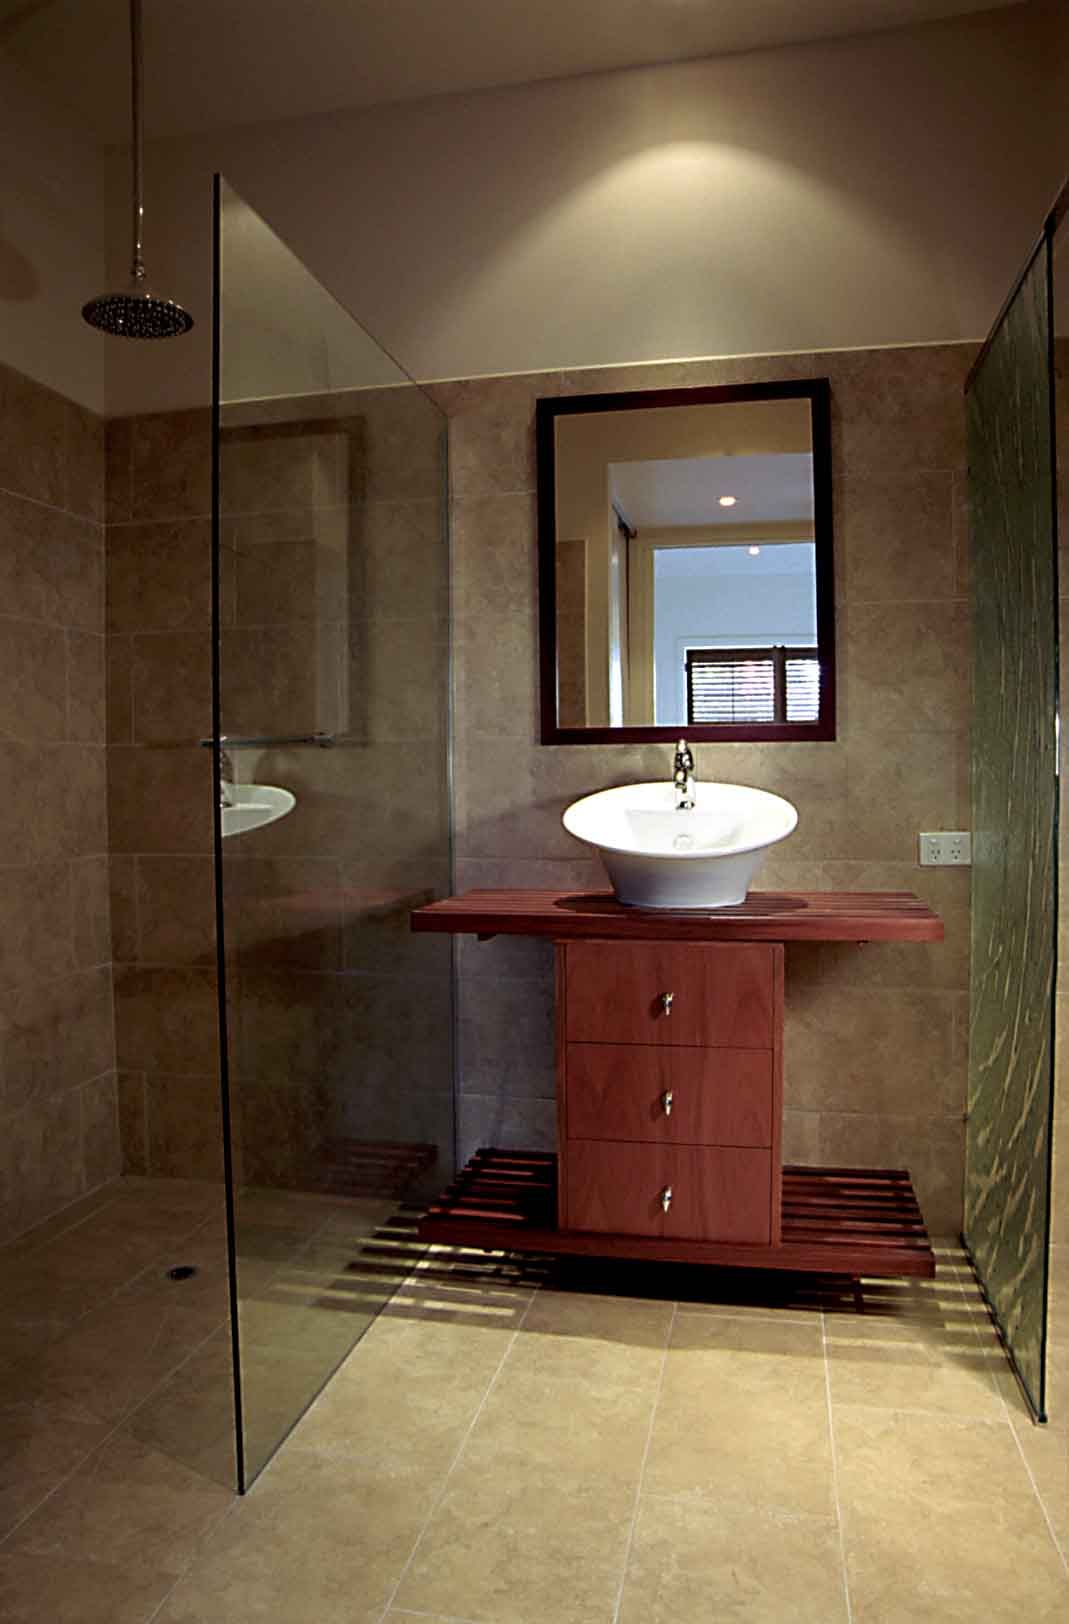 Shower Room Designs For Small Spaces wet room design for small bathrooms | small ensuite bathroom